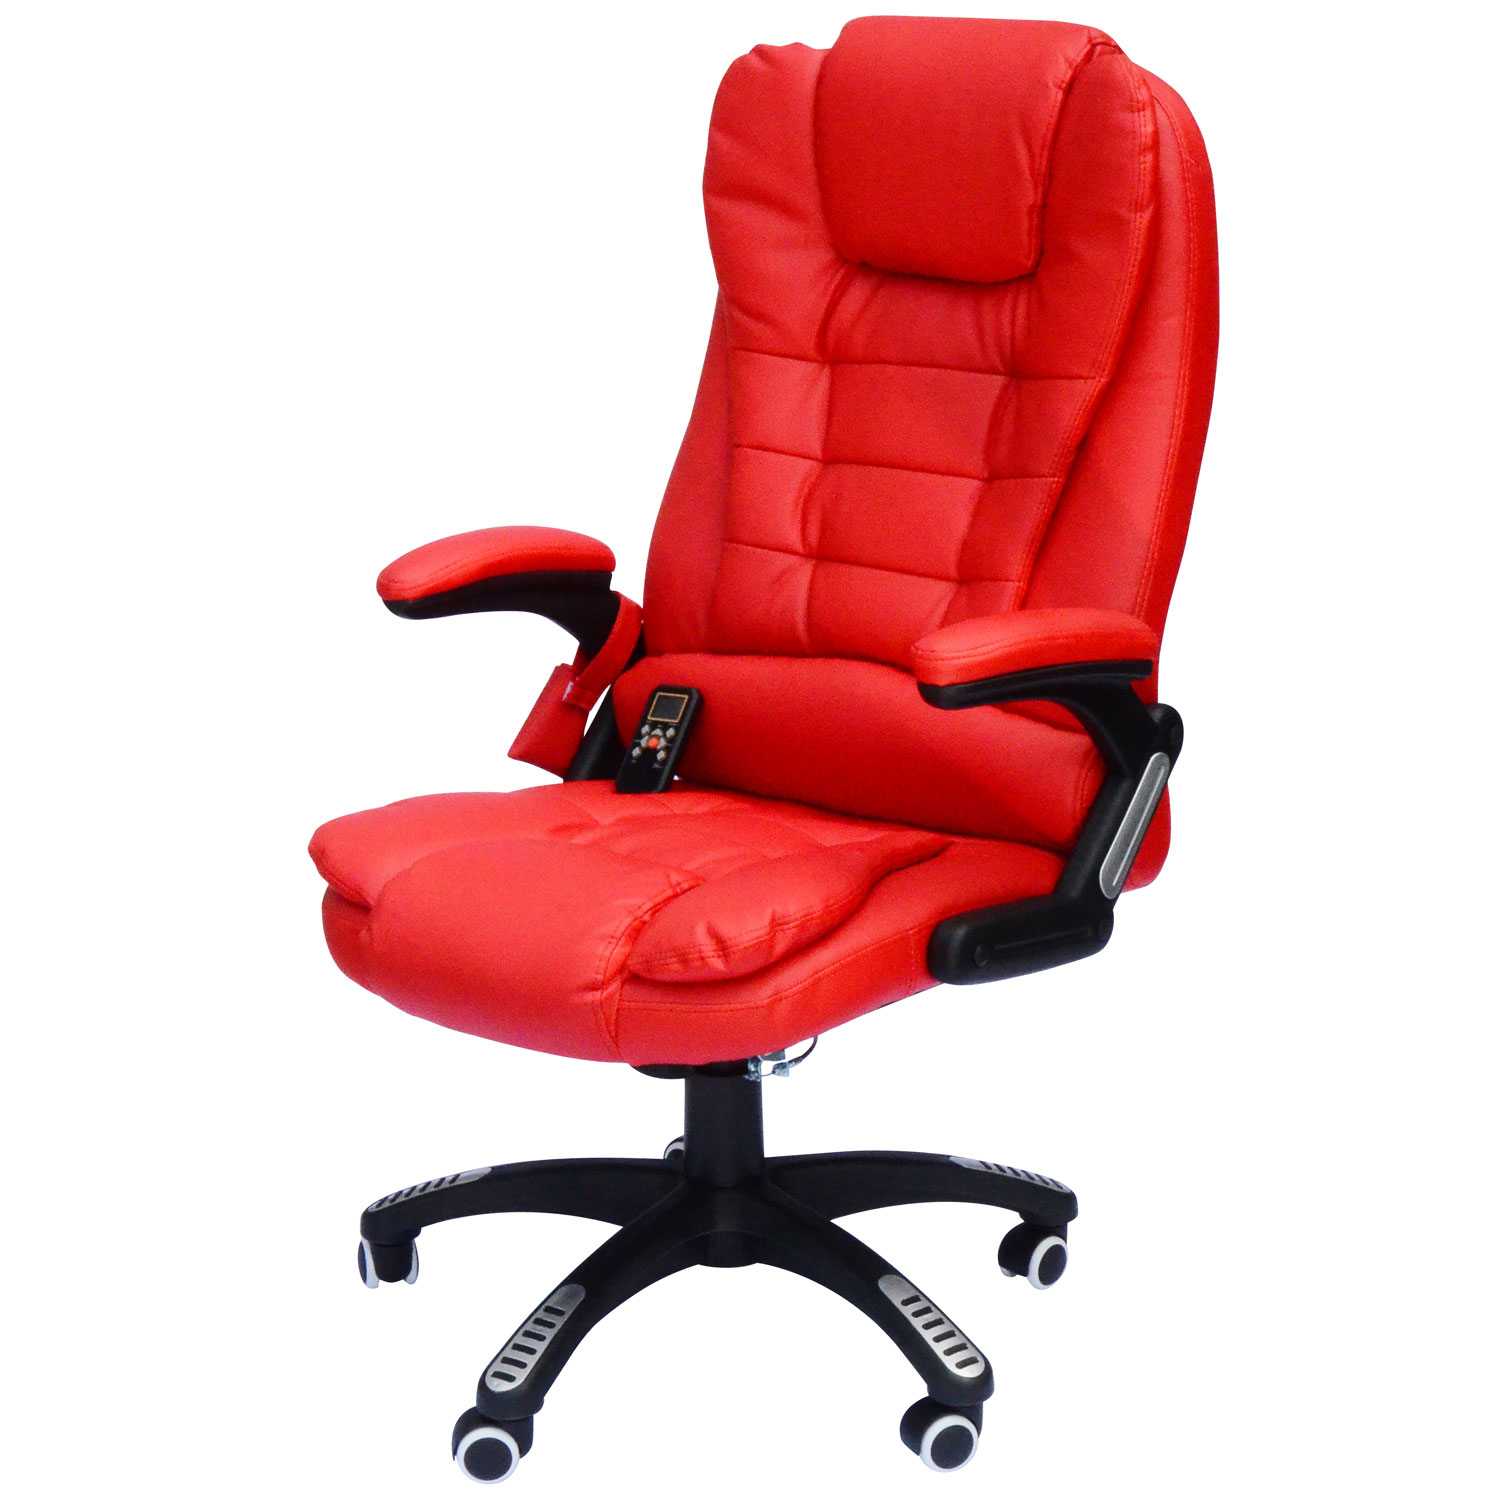 office chair red broyhill accent chairs desk work adjustable homcom high back executive ergonomic pu leather heated vibrating massage